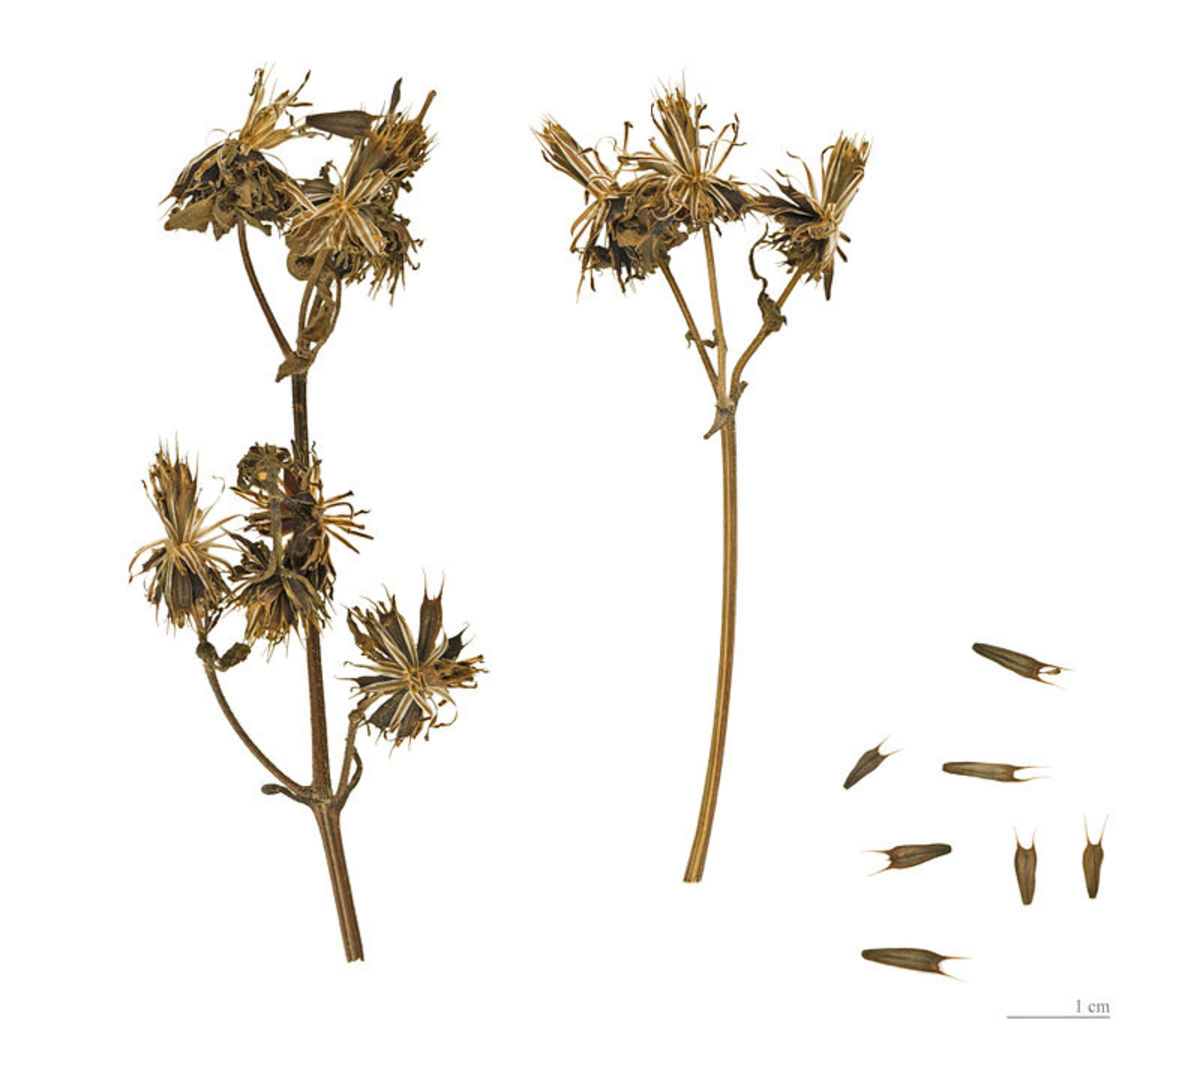 Seed Dispersal: How Do Plants Spread Their Seeds?